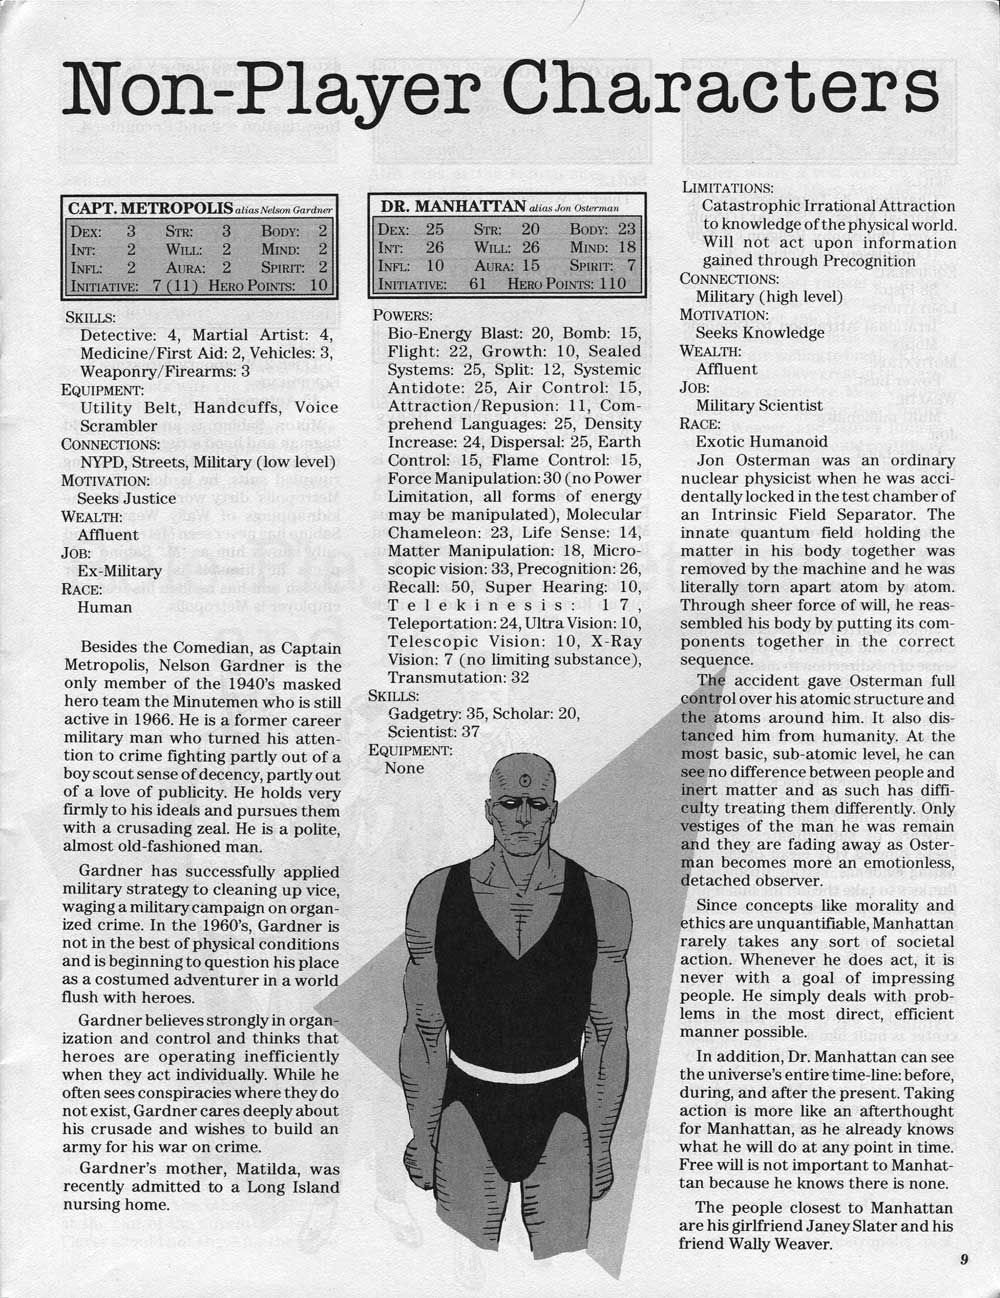 watchmen fair rpg stats once upon a geek while compiling information